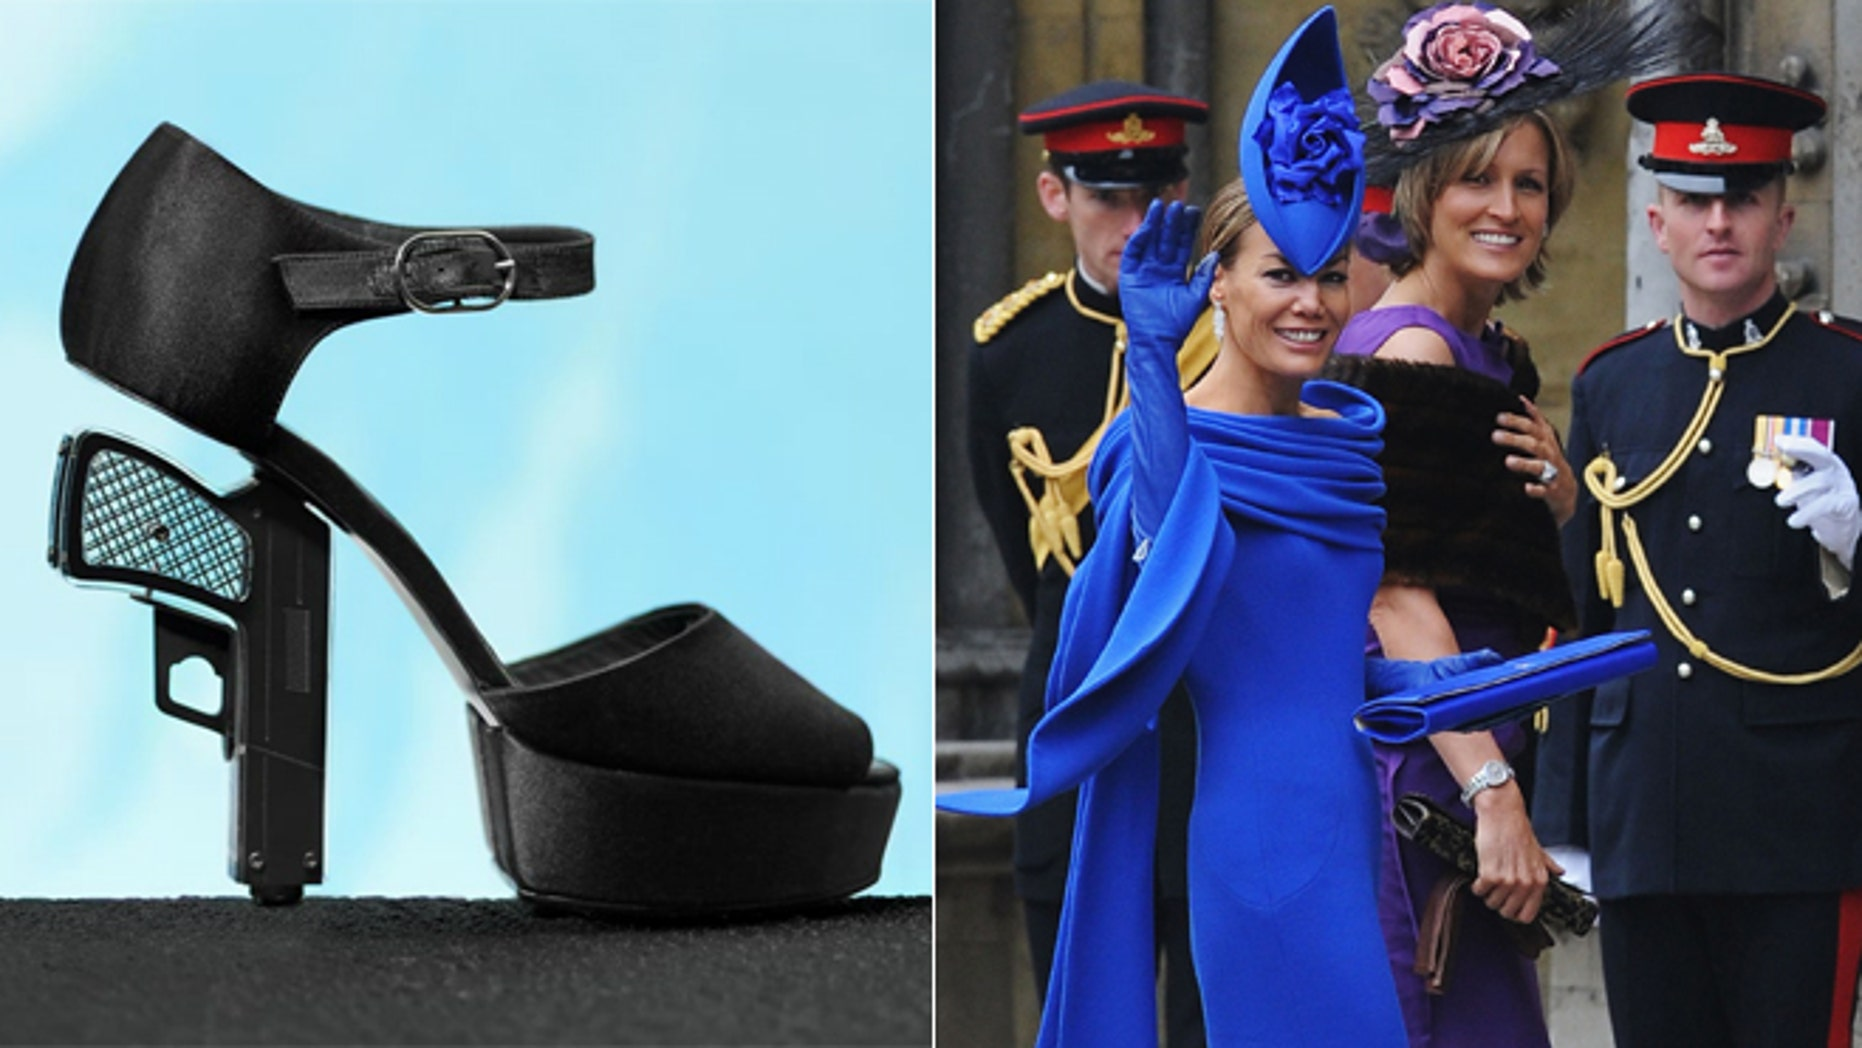 Chanel shoes, left. Tara Palmer Tomkinson attends the wedding of Britain's Prince William and Kate Middleton, in central London April 29, 2011.